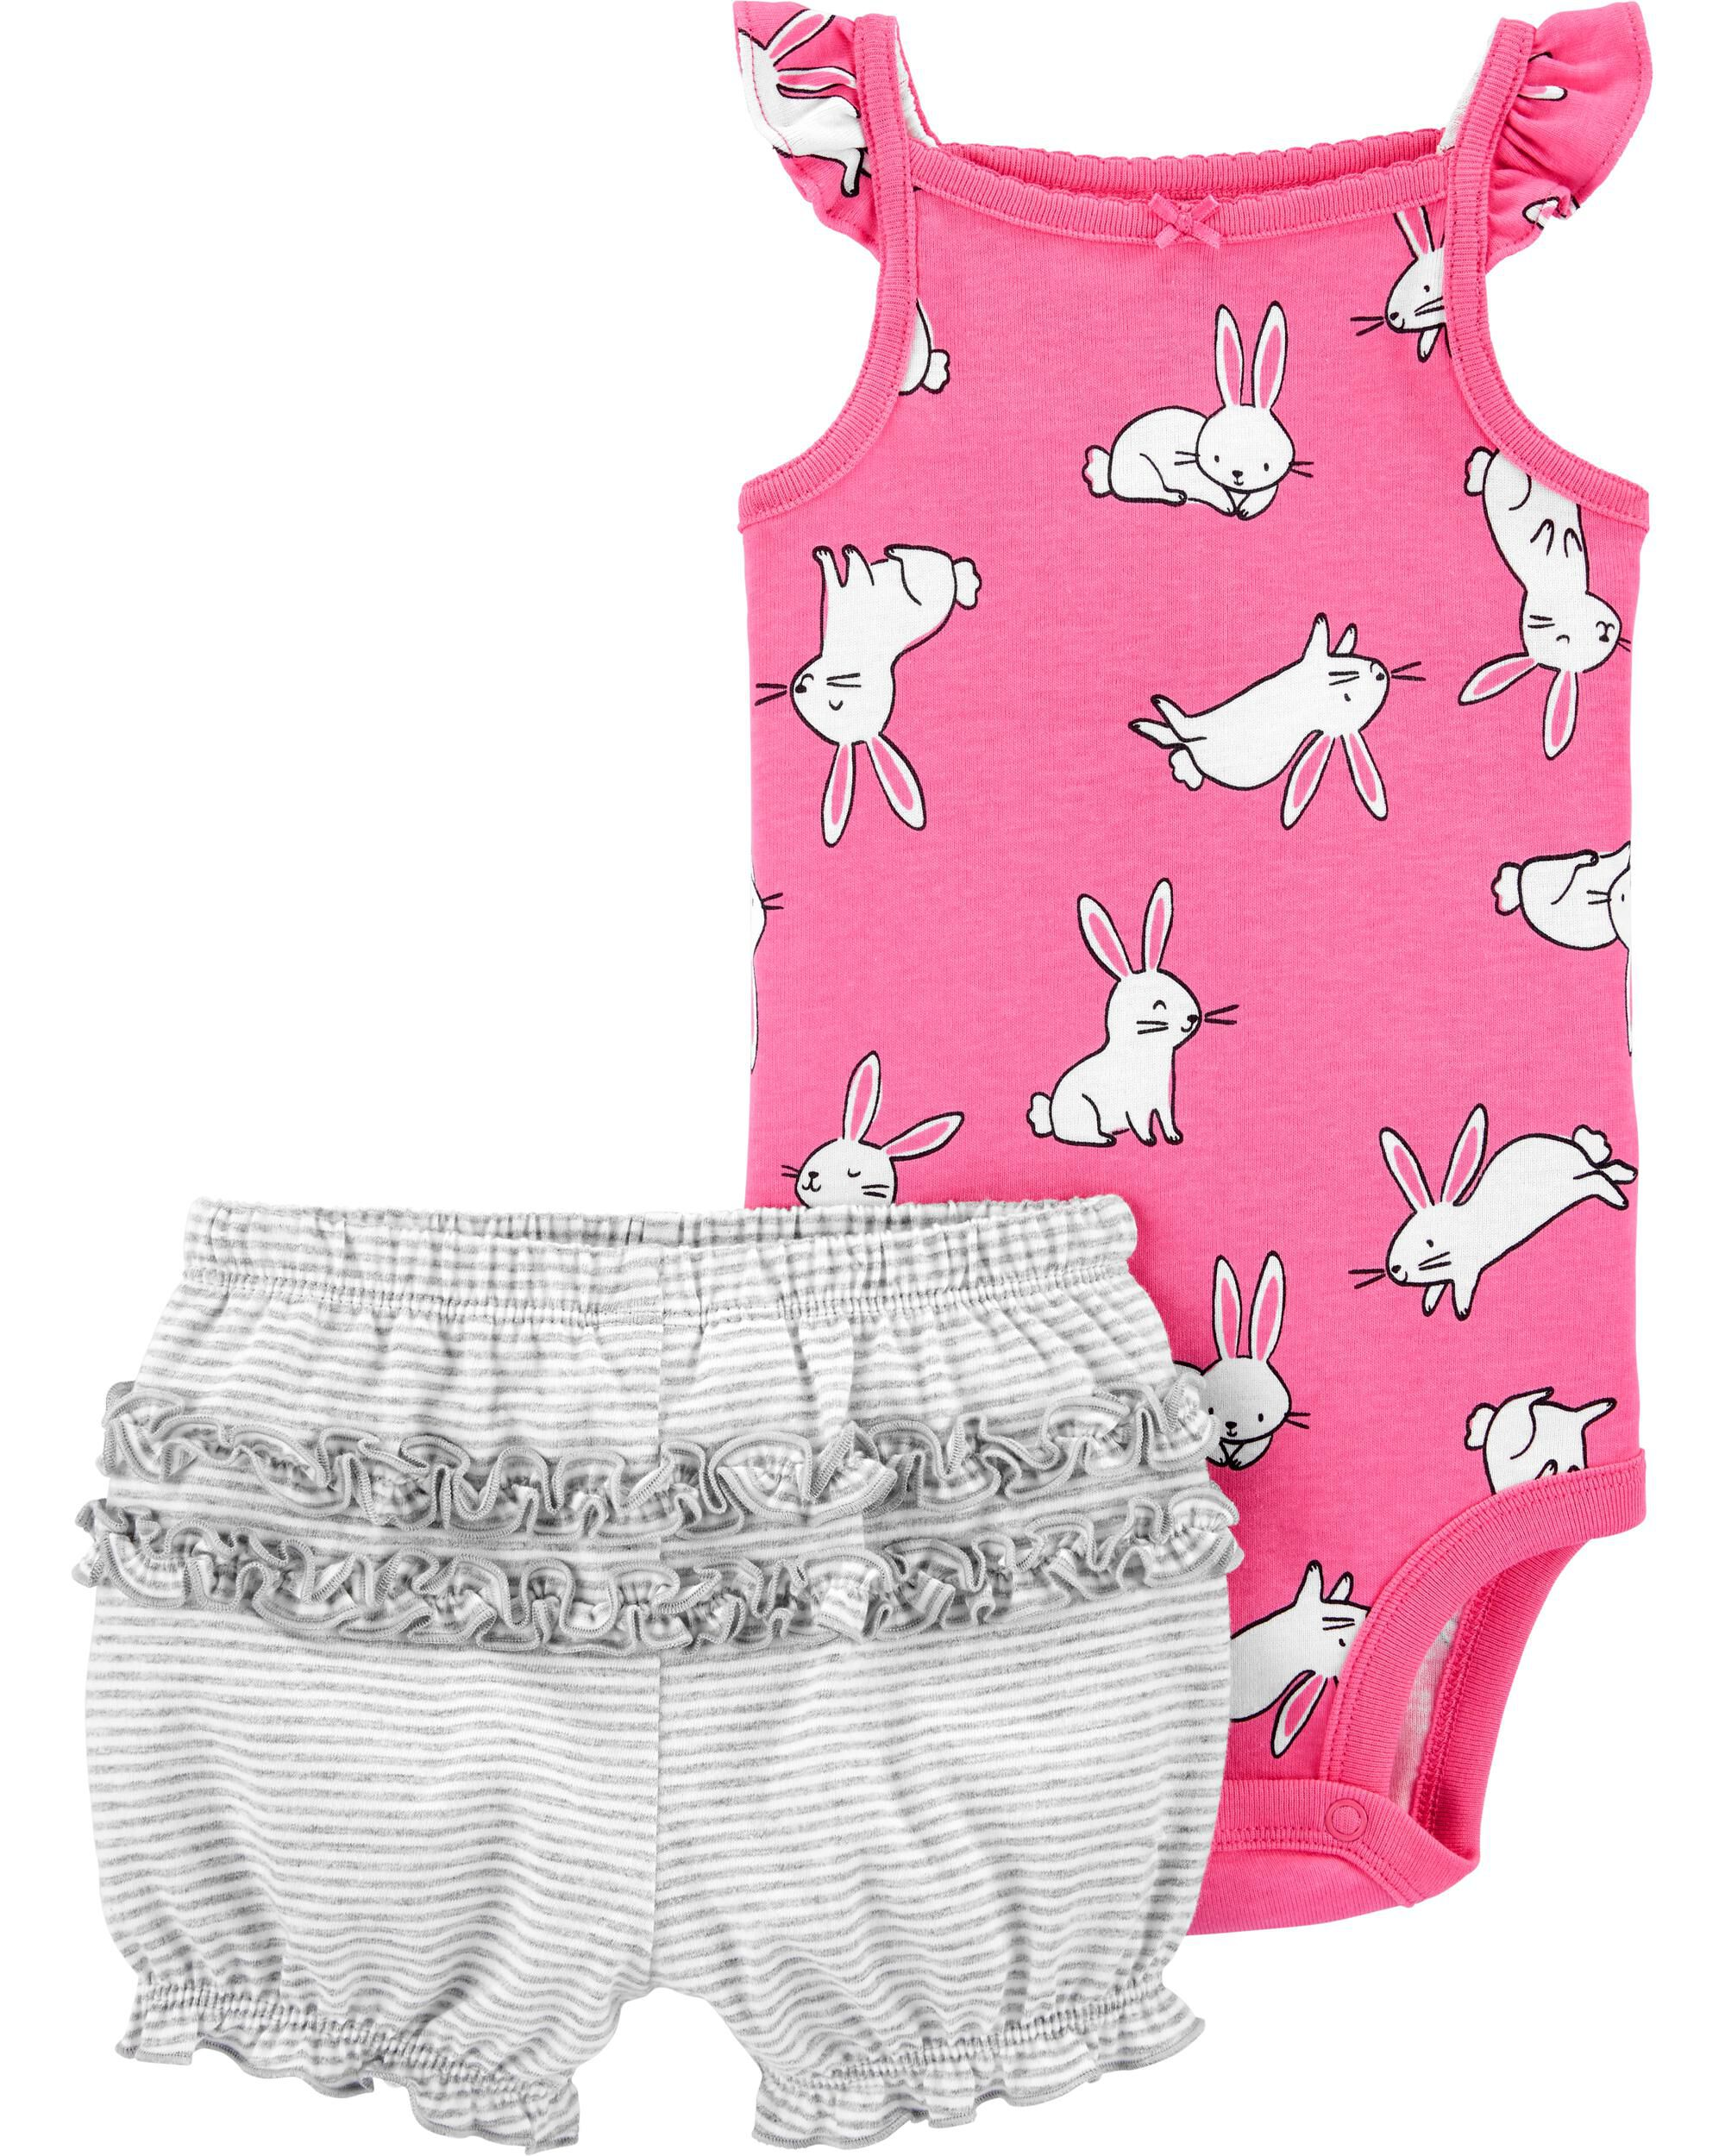 Carter/'s Baby//Toddler Girls/' 2-Piece Outfit Playwear Set *NWT* 24 Months